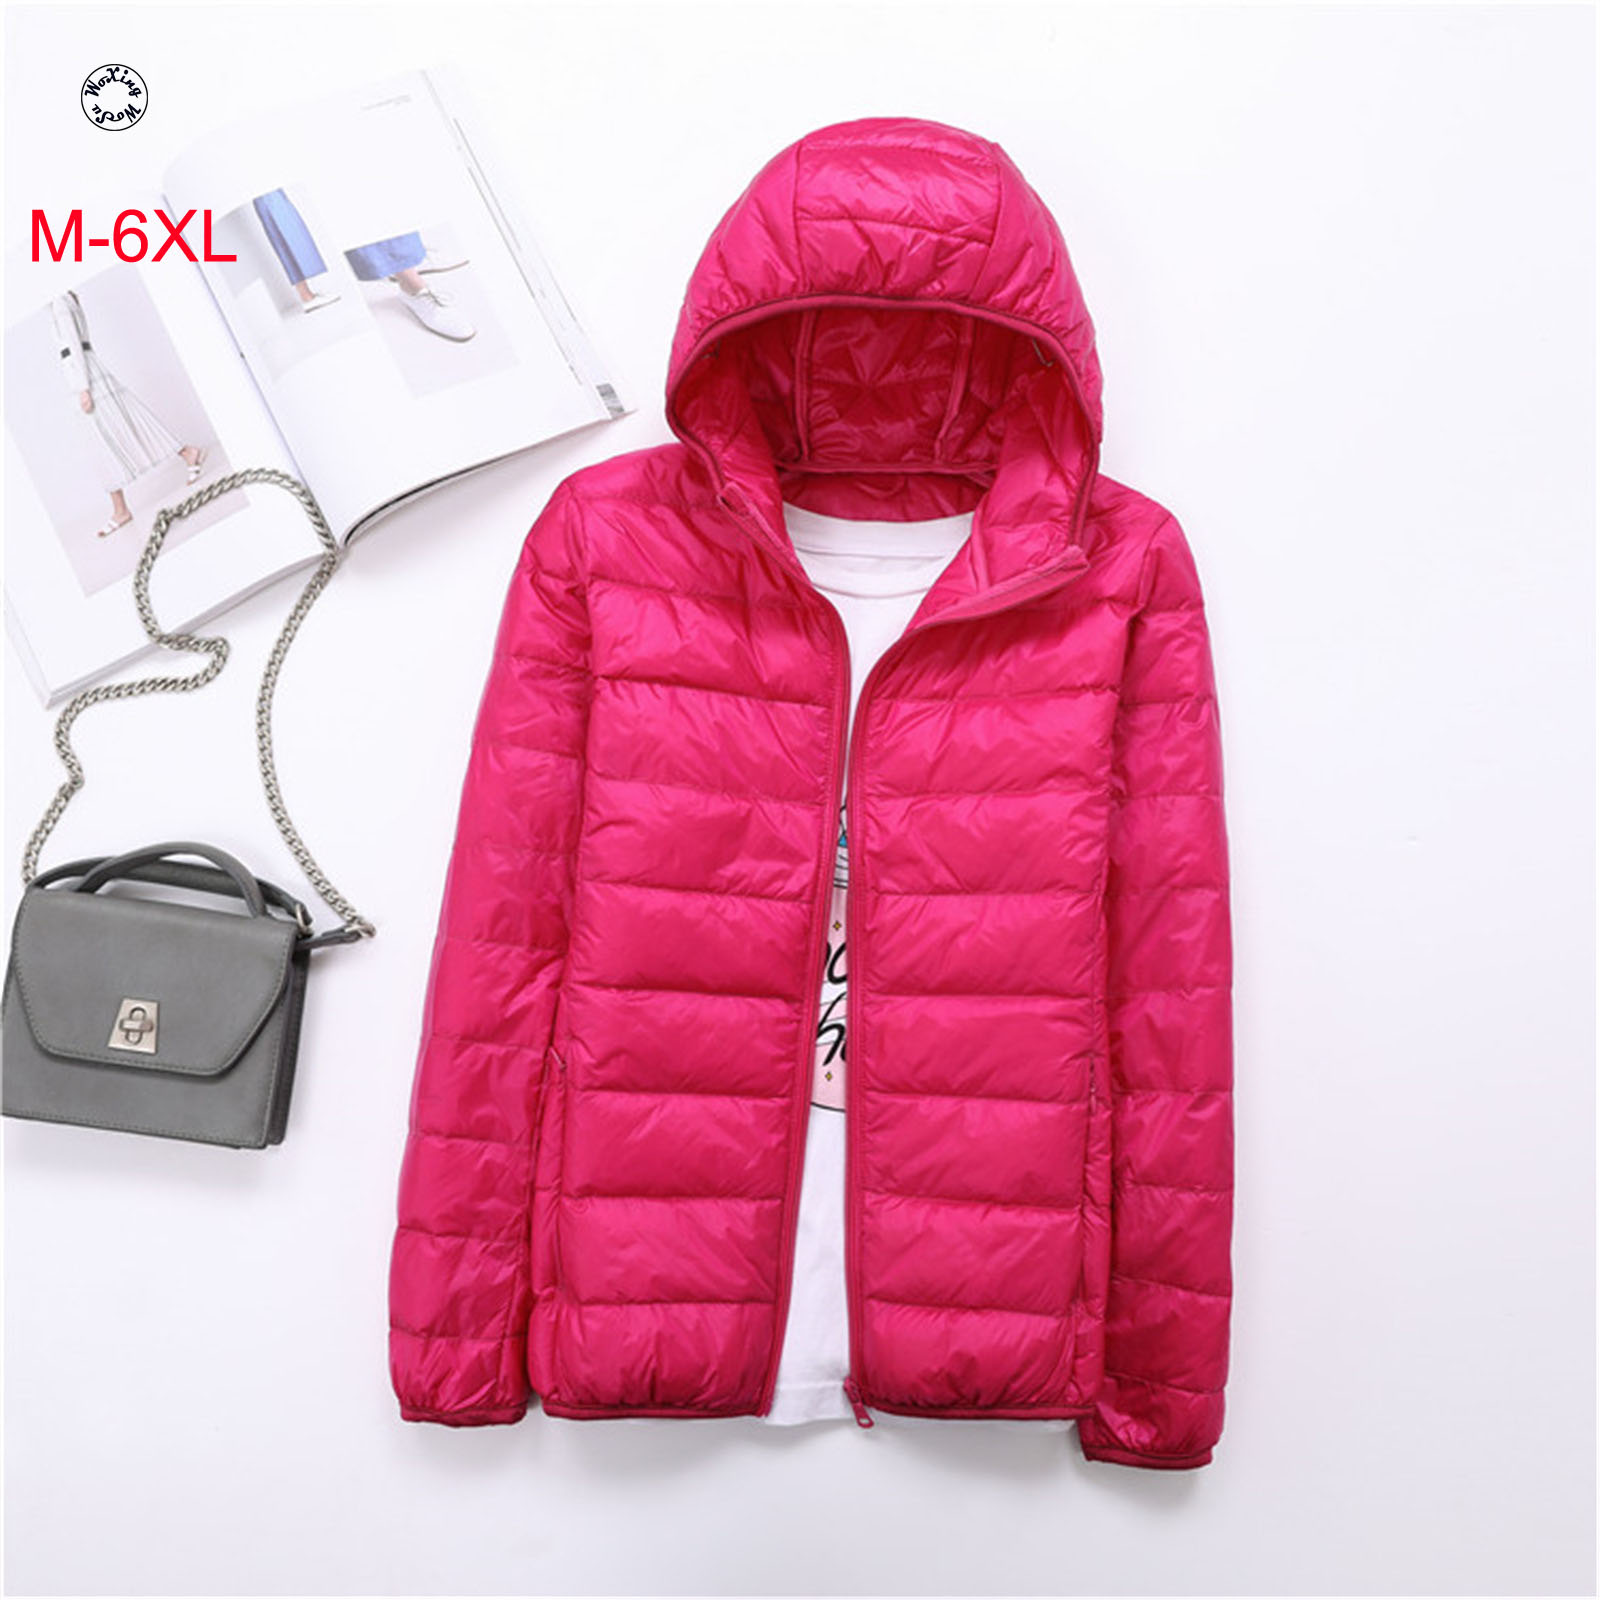 Woxingwosu light down eiderdown women's short hooded down jacket bonnet slim body size code jacket.